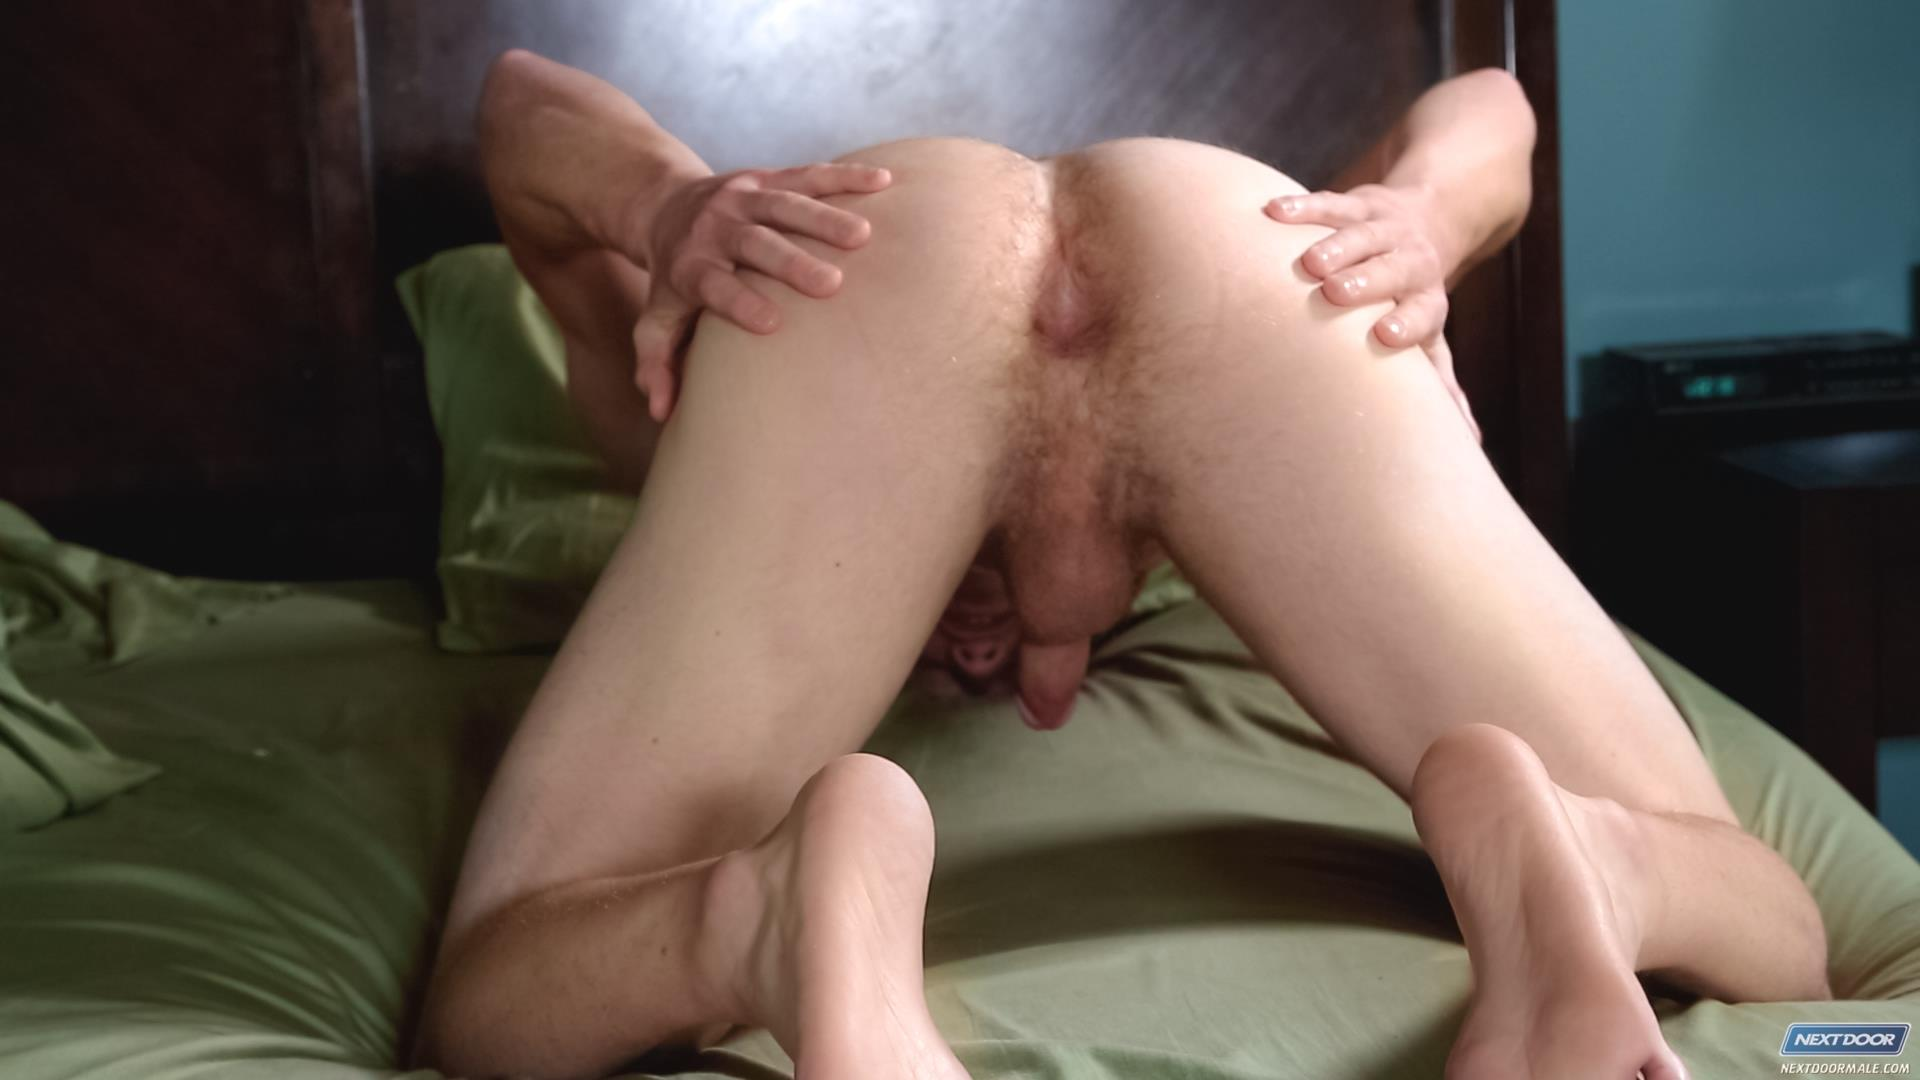 Next-Door-Male-Stryker-Texas-Redhead-Jerking-His-Cock-Amateur-Gay-Porn-09 Texas Redneck Redhead Country Boy Jerking His Ginger Cock